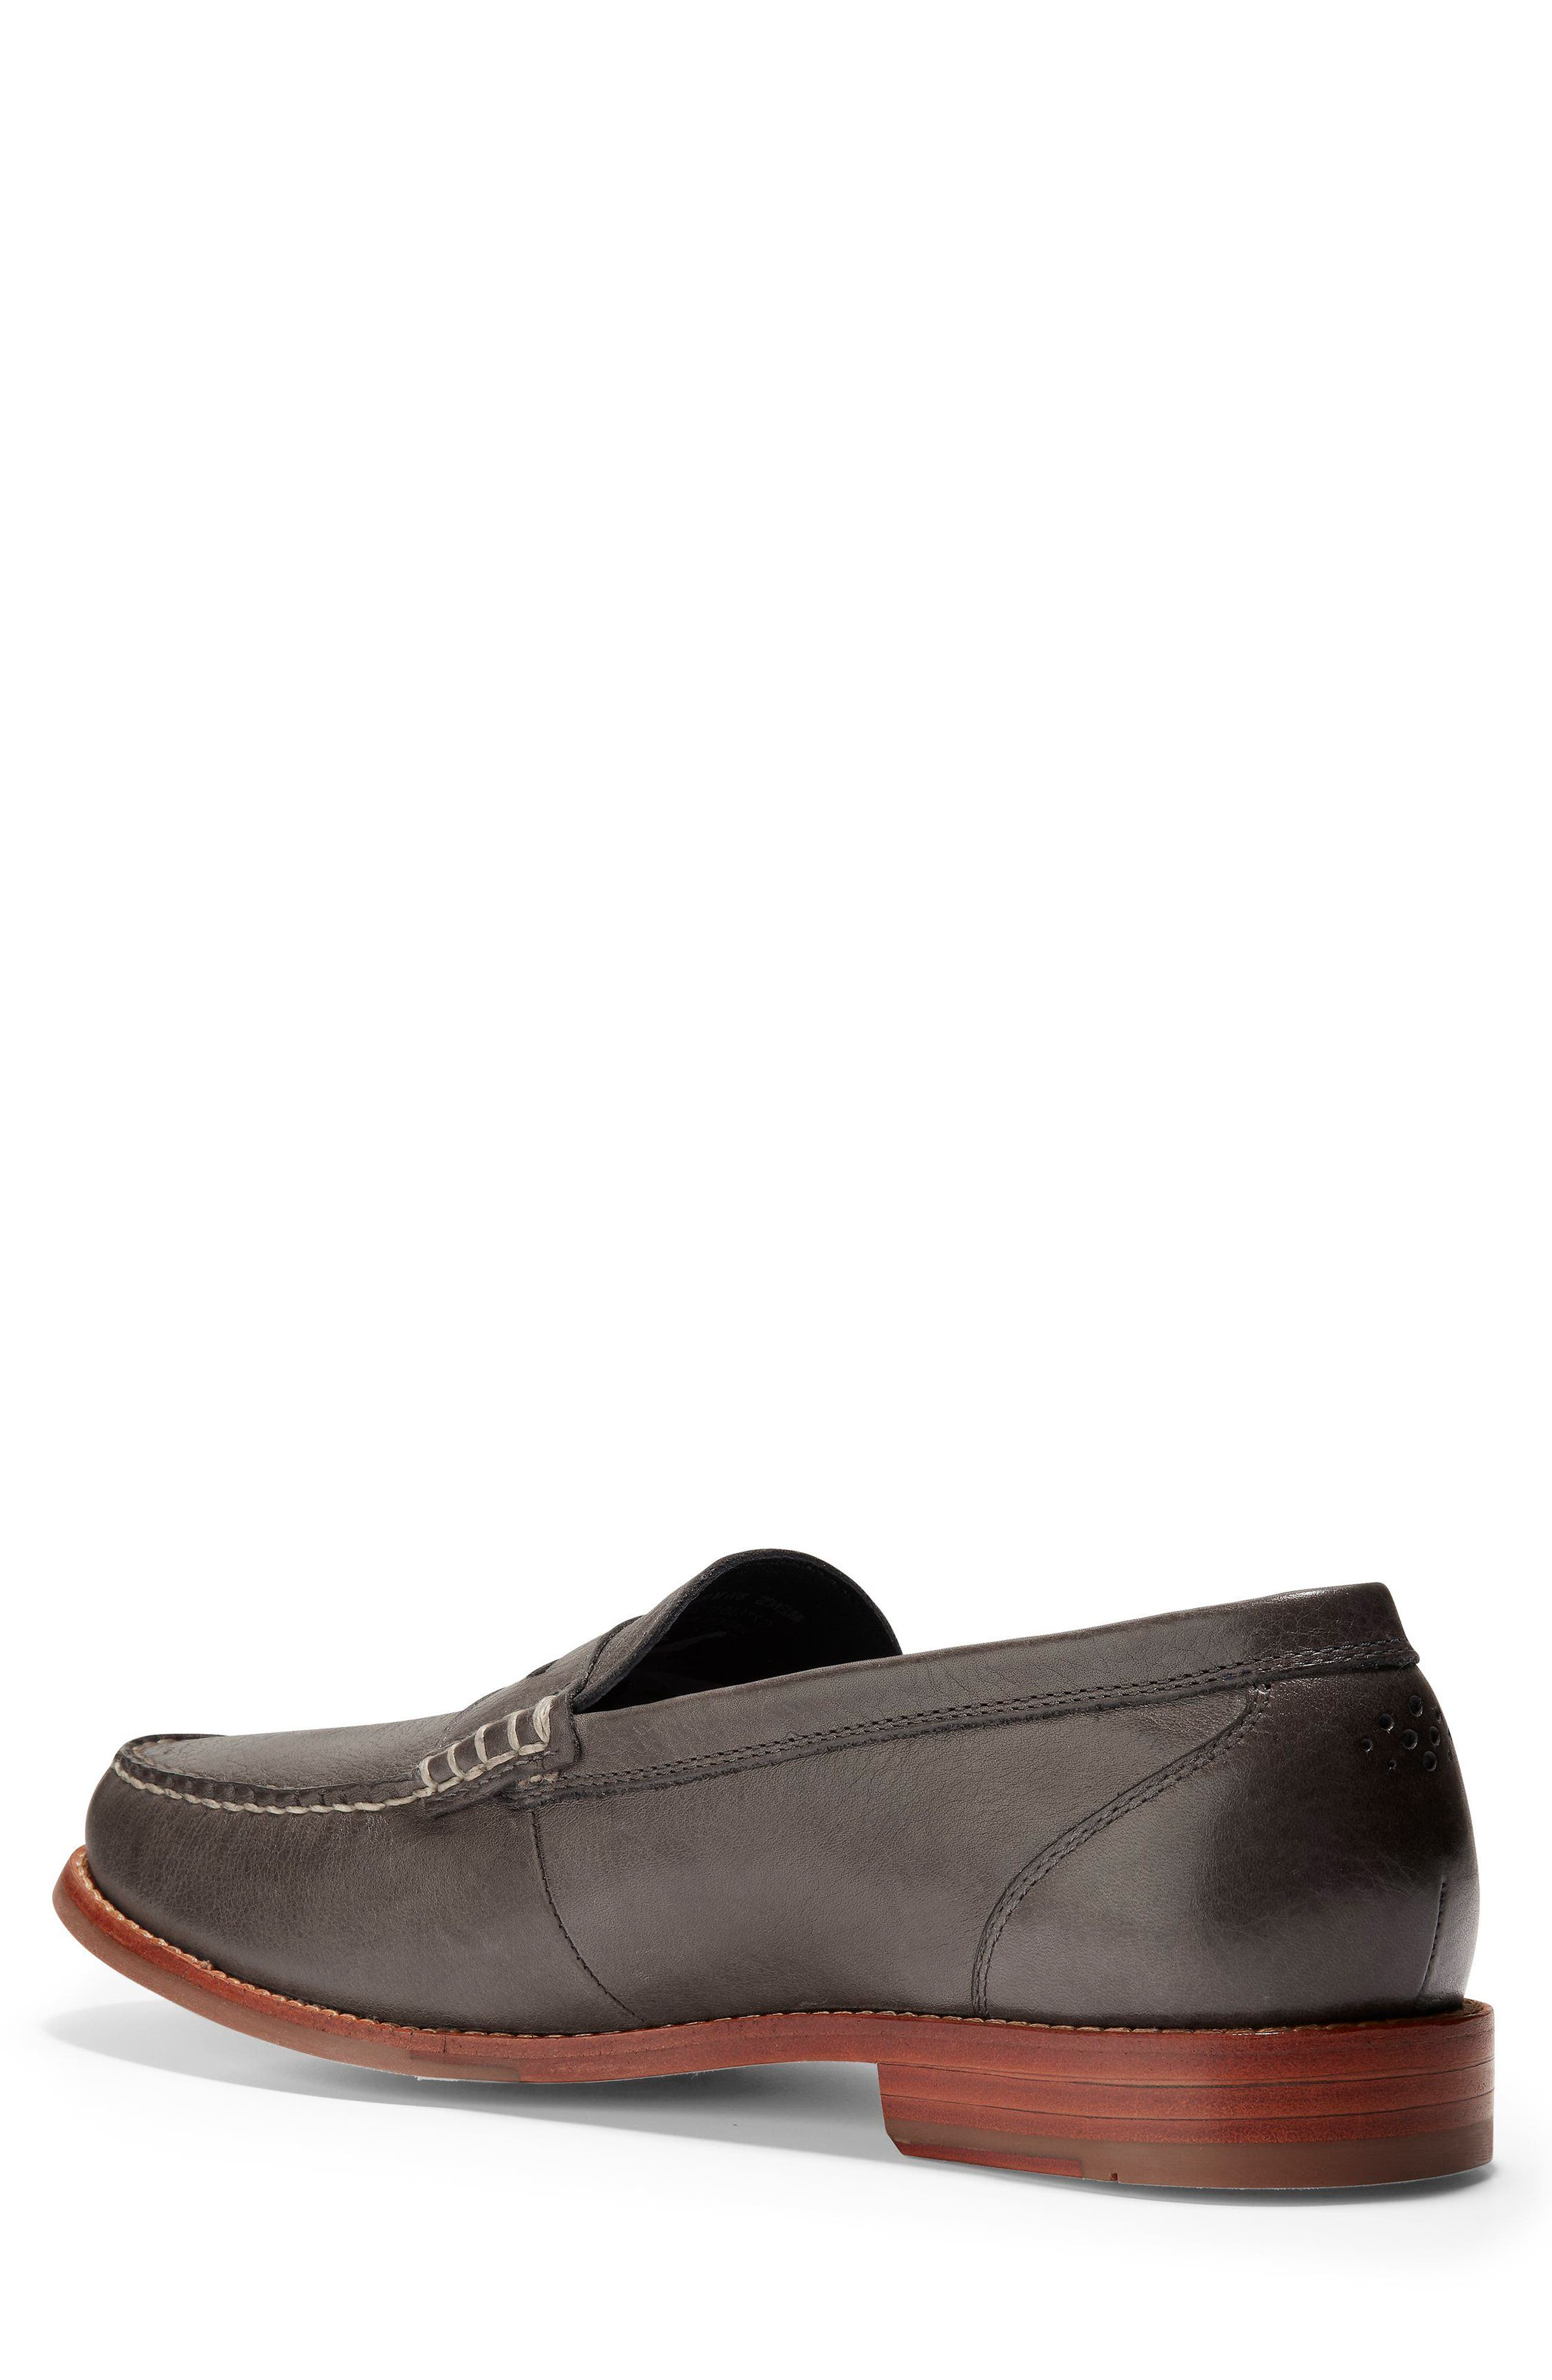 'Pinch Grand' Penny Loafer,                             Alternate thumbnail 2, color,                             021